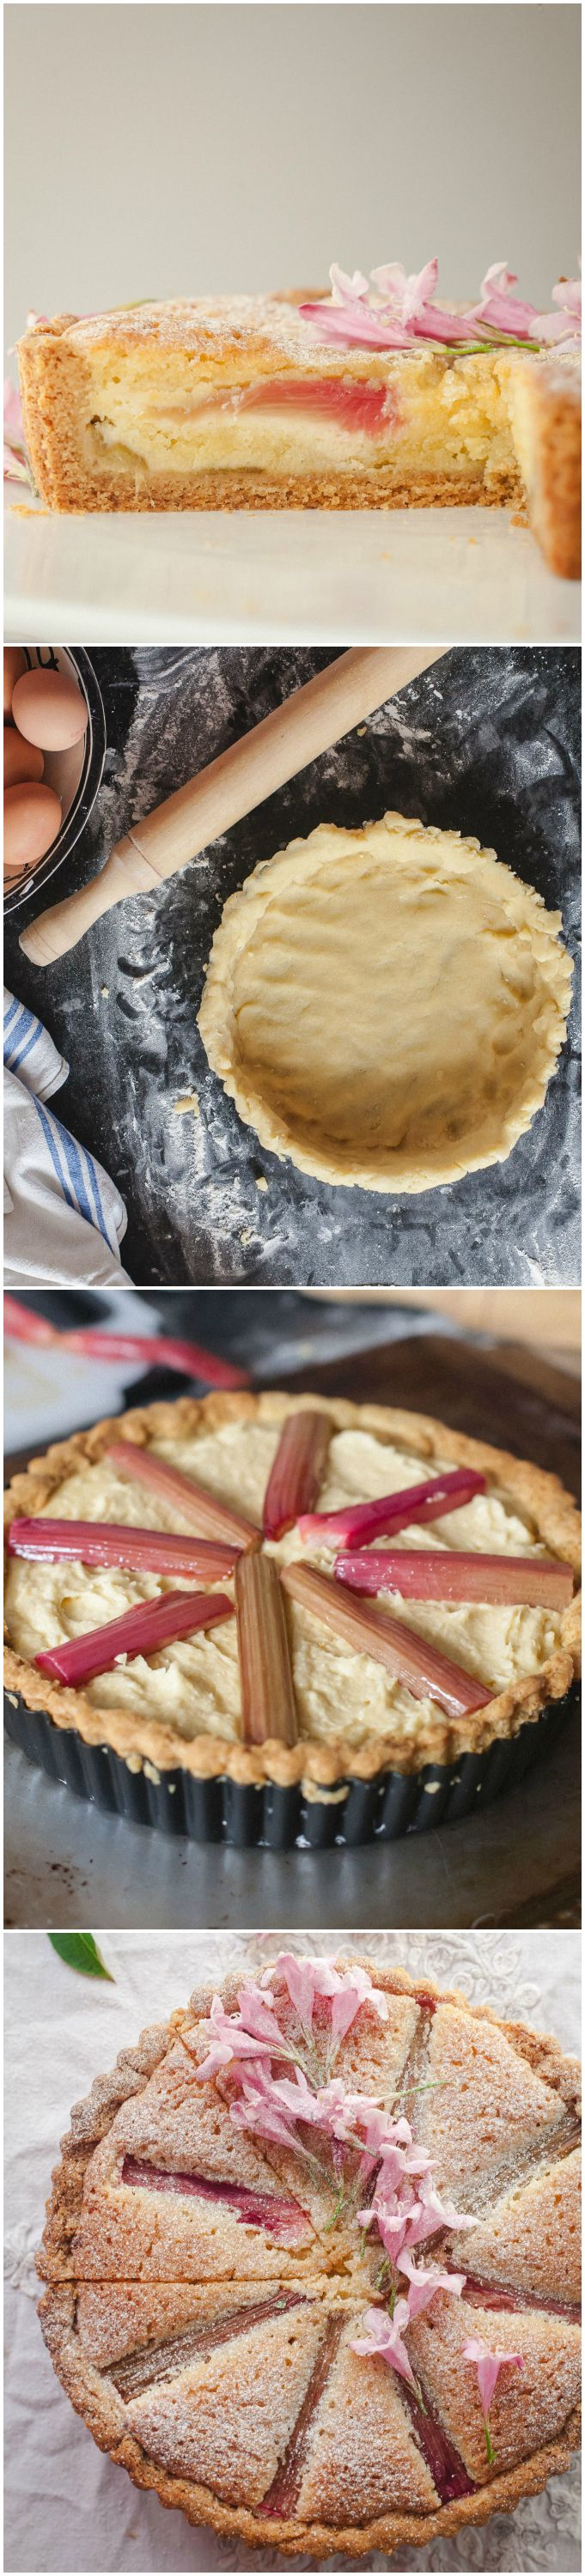 Roasted Rhubarb Bakewell Tart. Buttery tart filled with almond filling and roasted rhubarb. Another take on the British classic